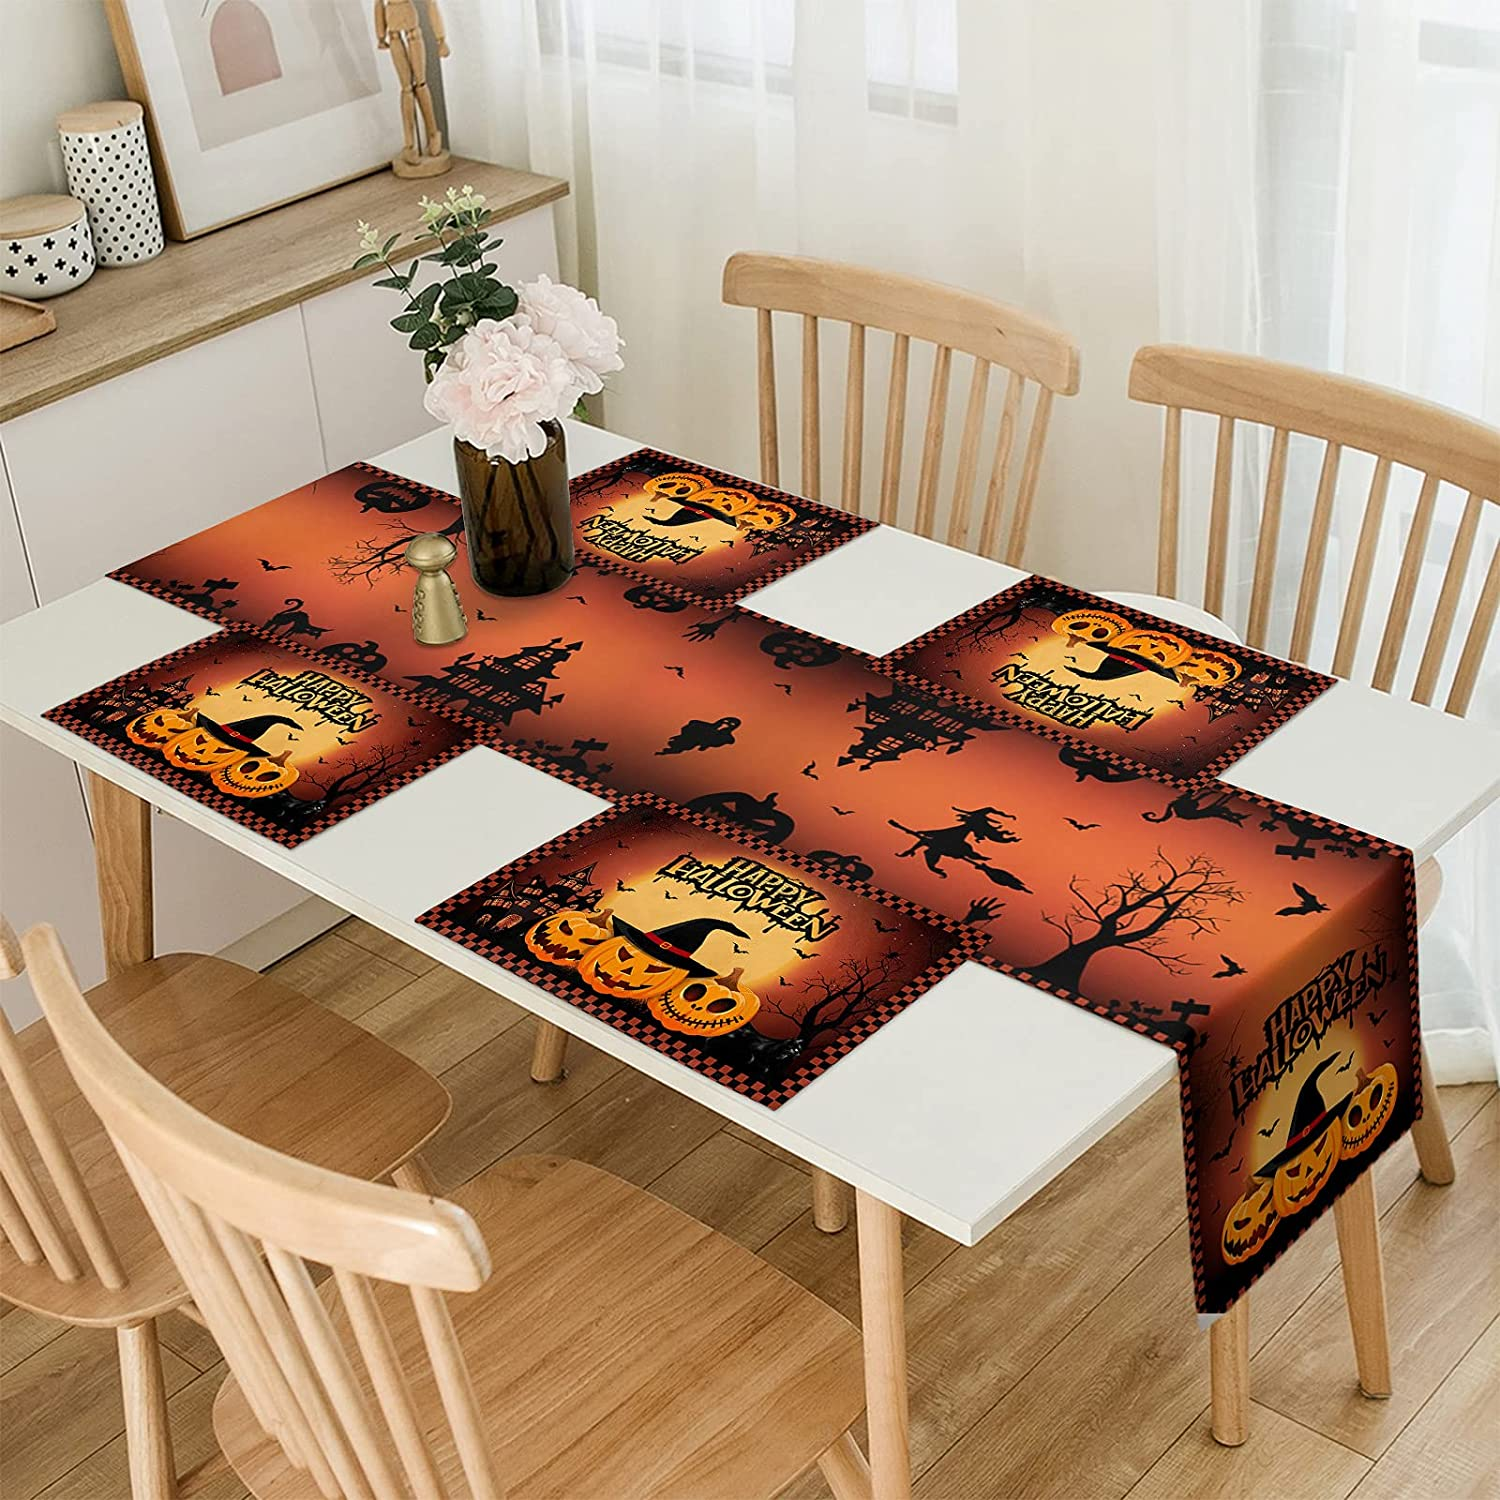 Halloween Max 79% OFF Table Runner with Placemats - 6 Save money Happy Set of